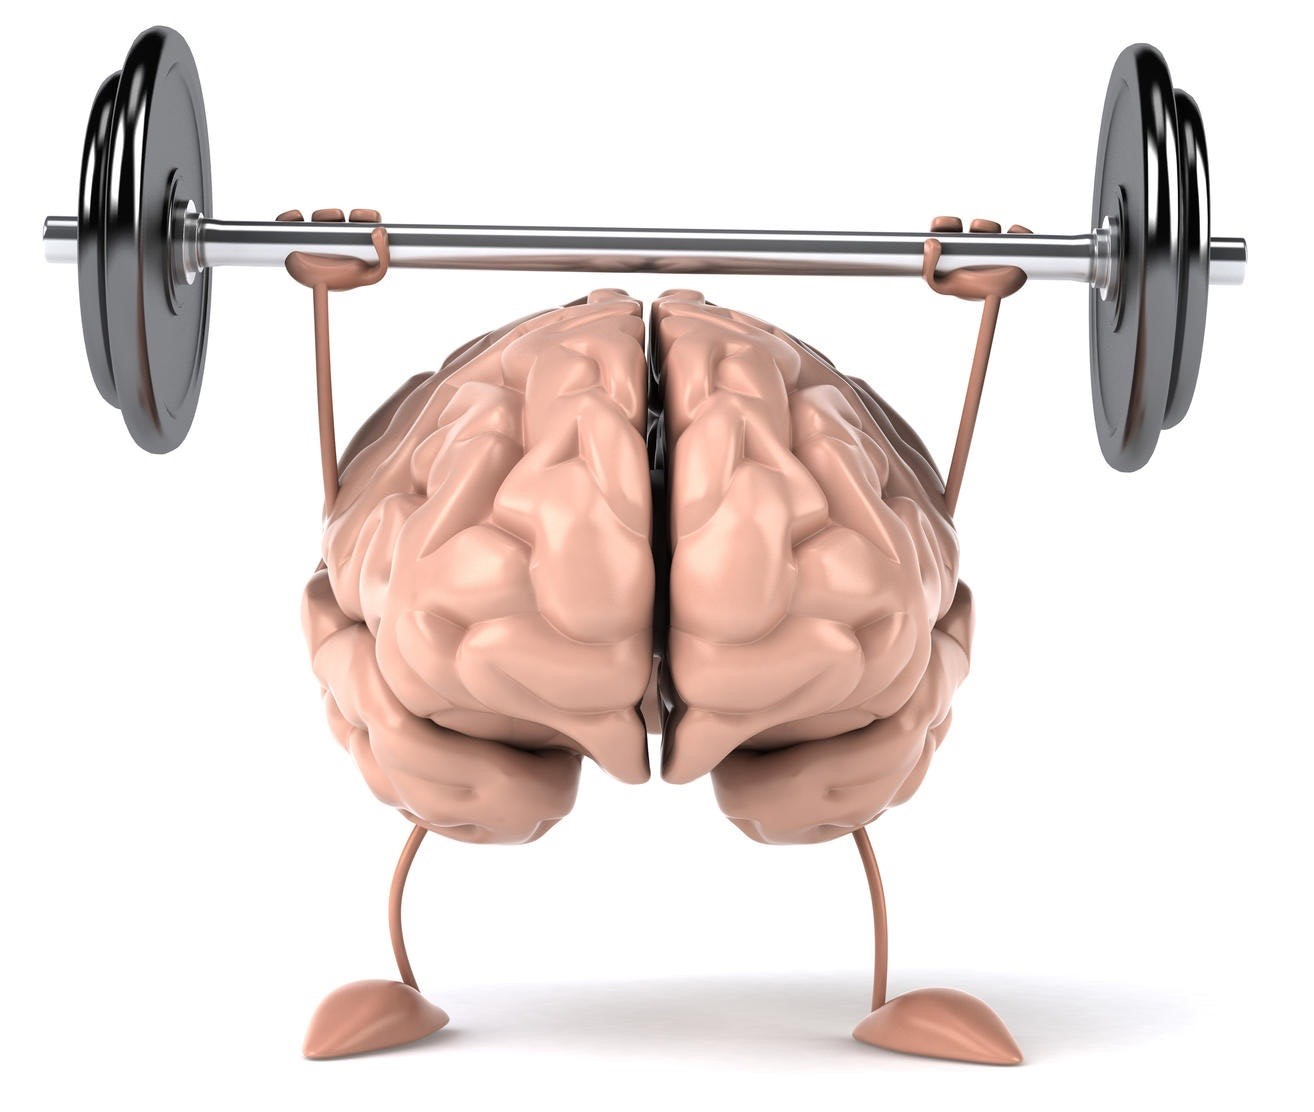 Brain with hands up bench pressing weights